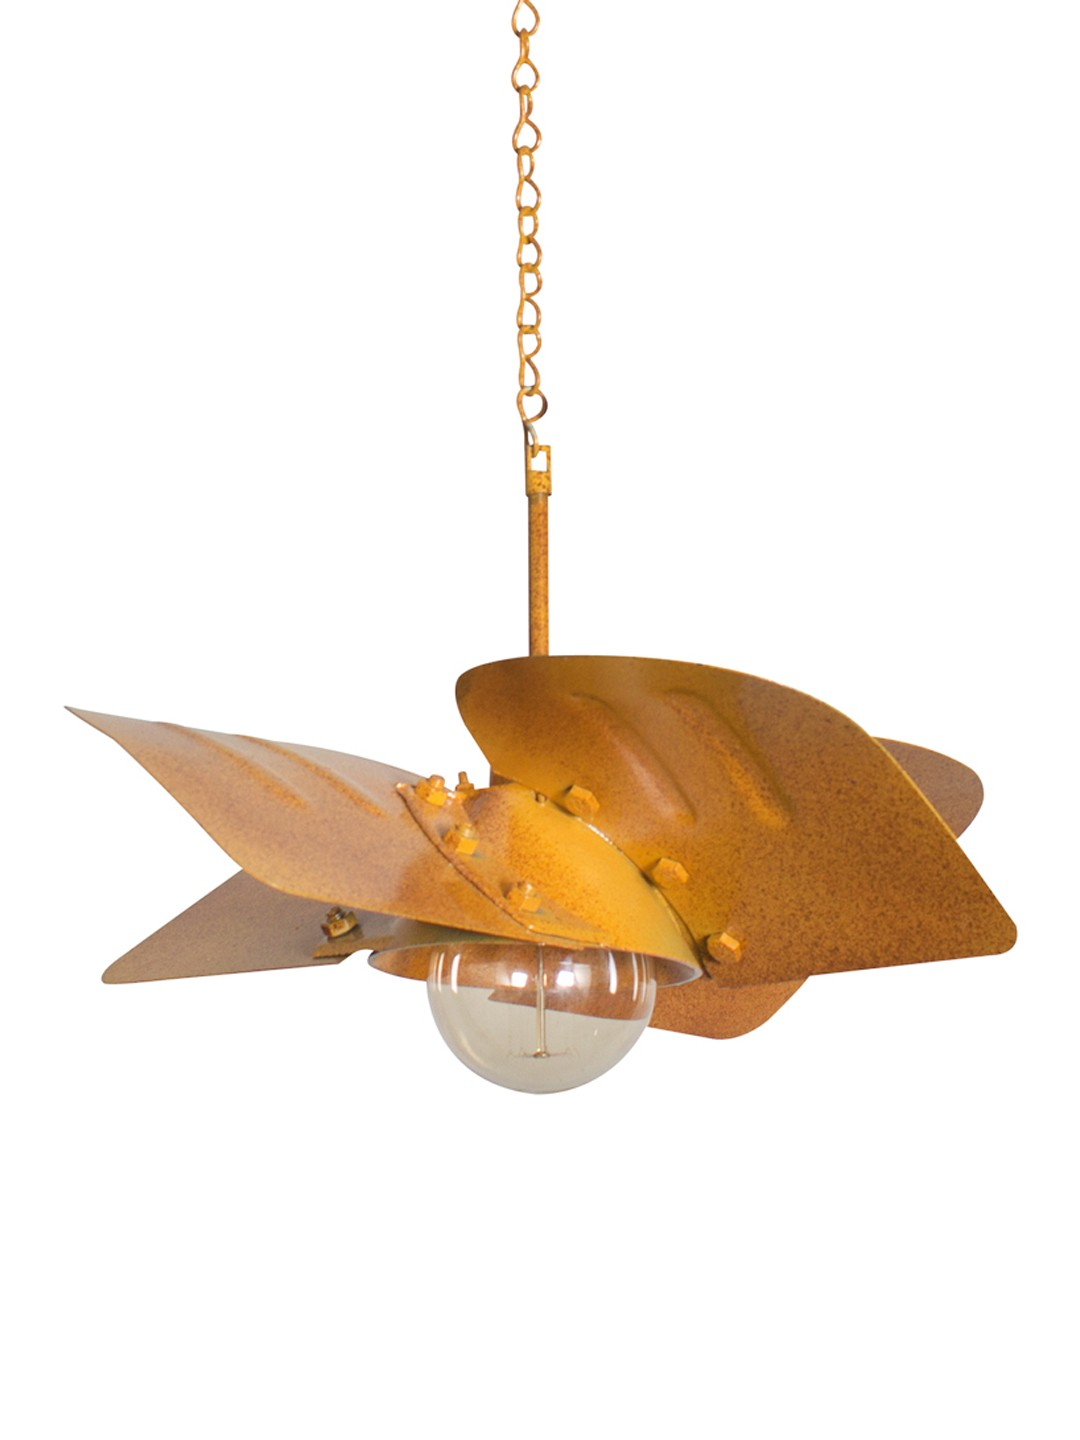 Industrial Turbine Fan Hanging Light